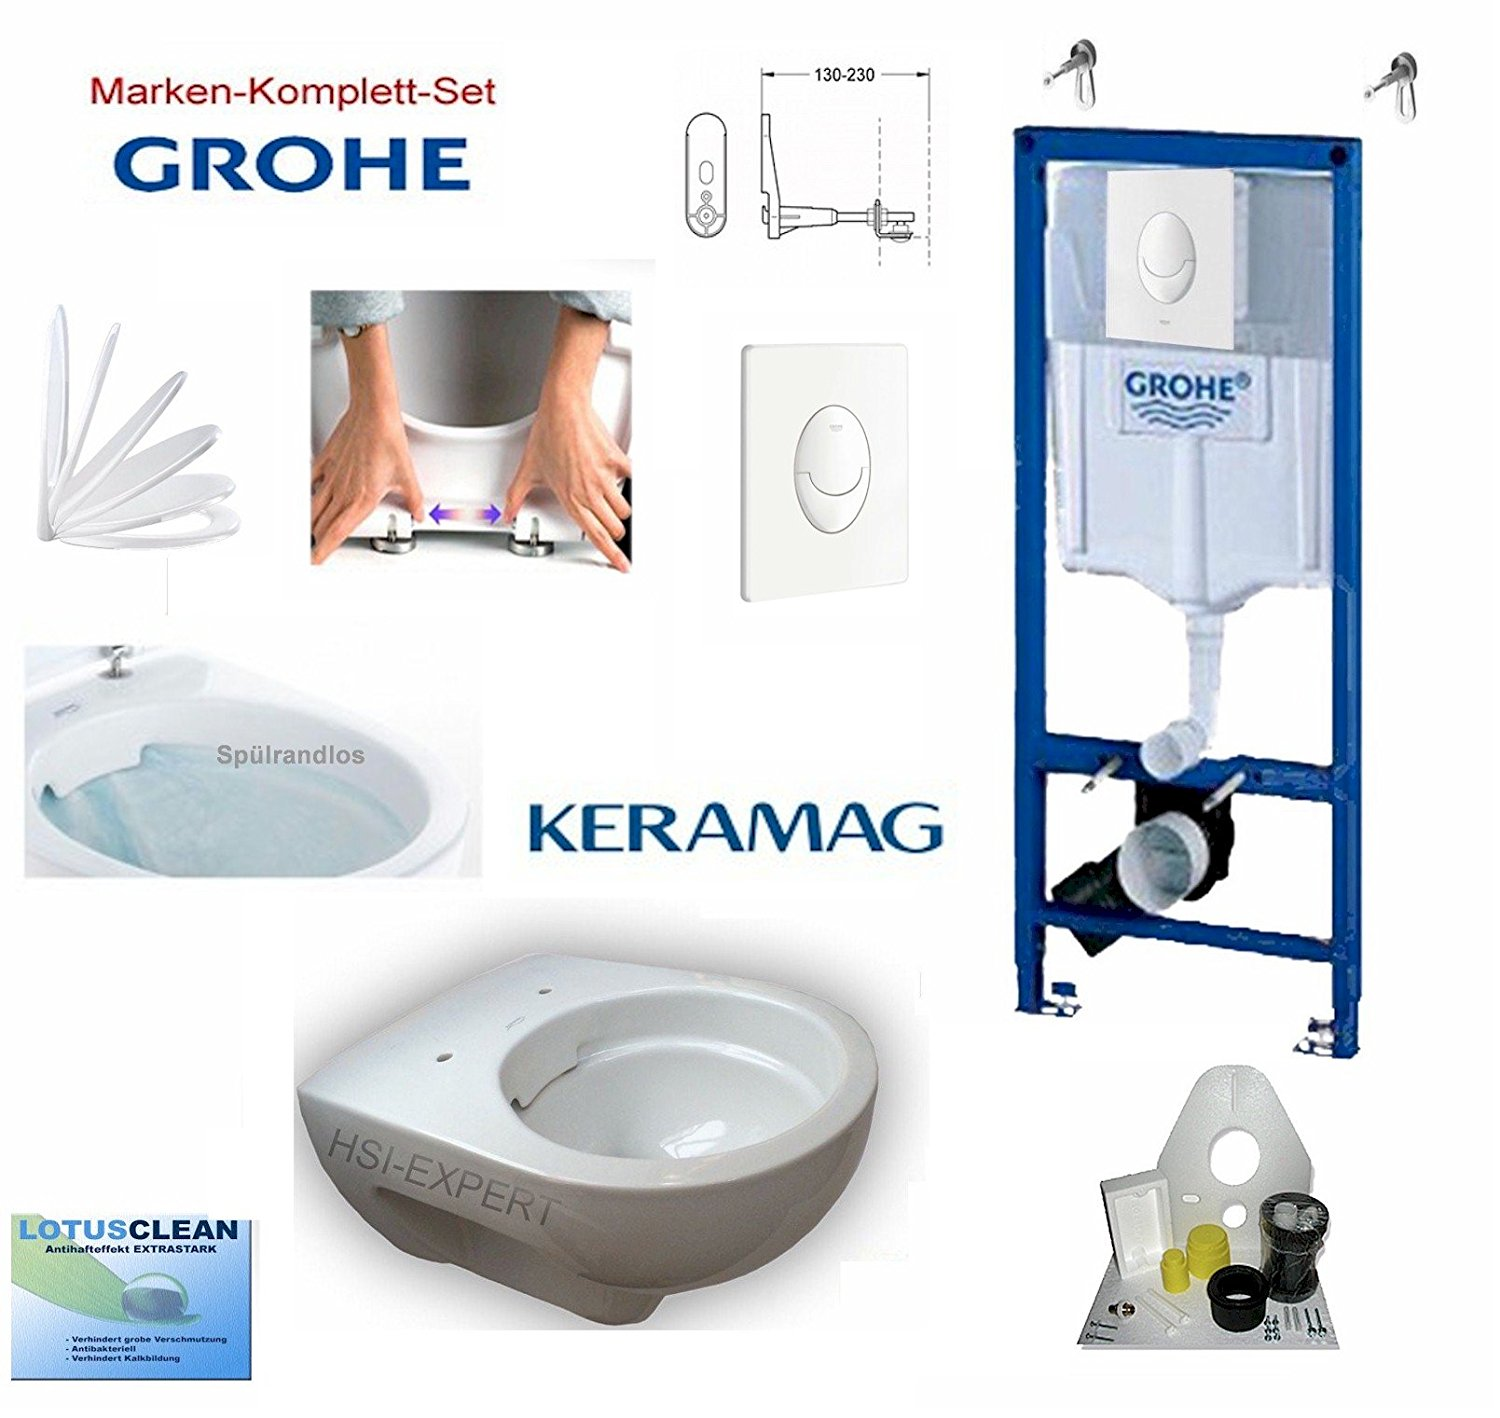 grohe vorwandelement keramag renova nr 1 dr ckerplatte wc sitz beschichtung grohe. Black Bedroom Furniture Sets. Home Design Ideas